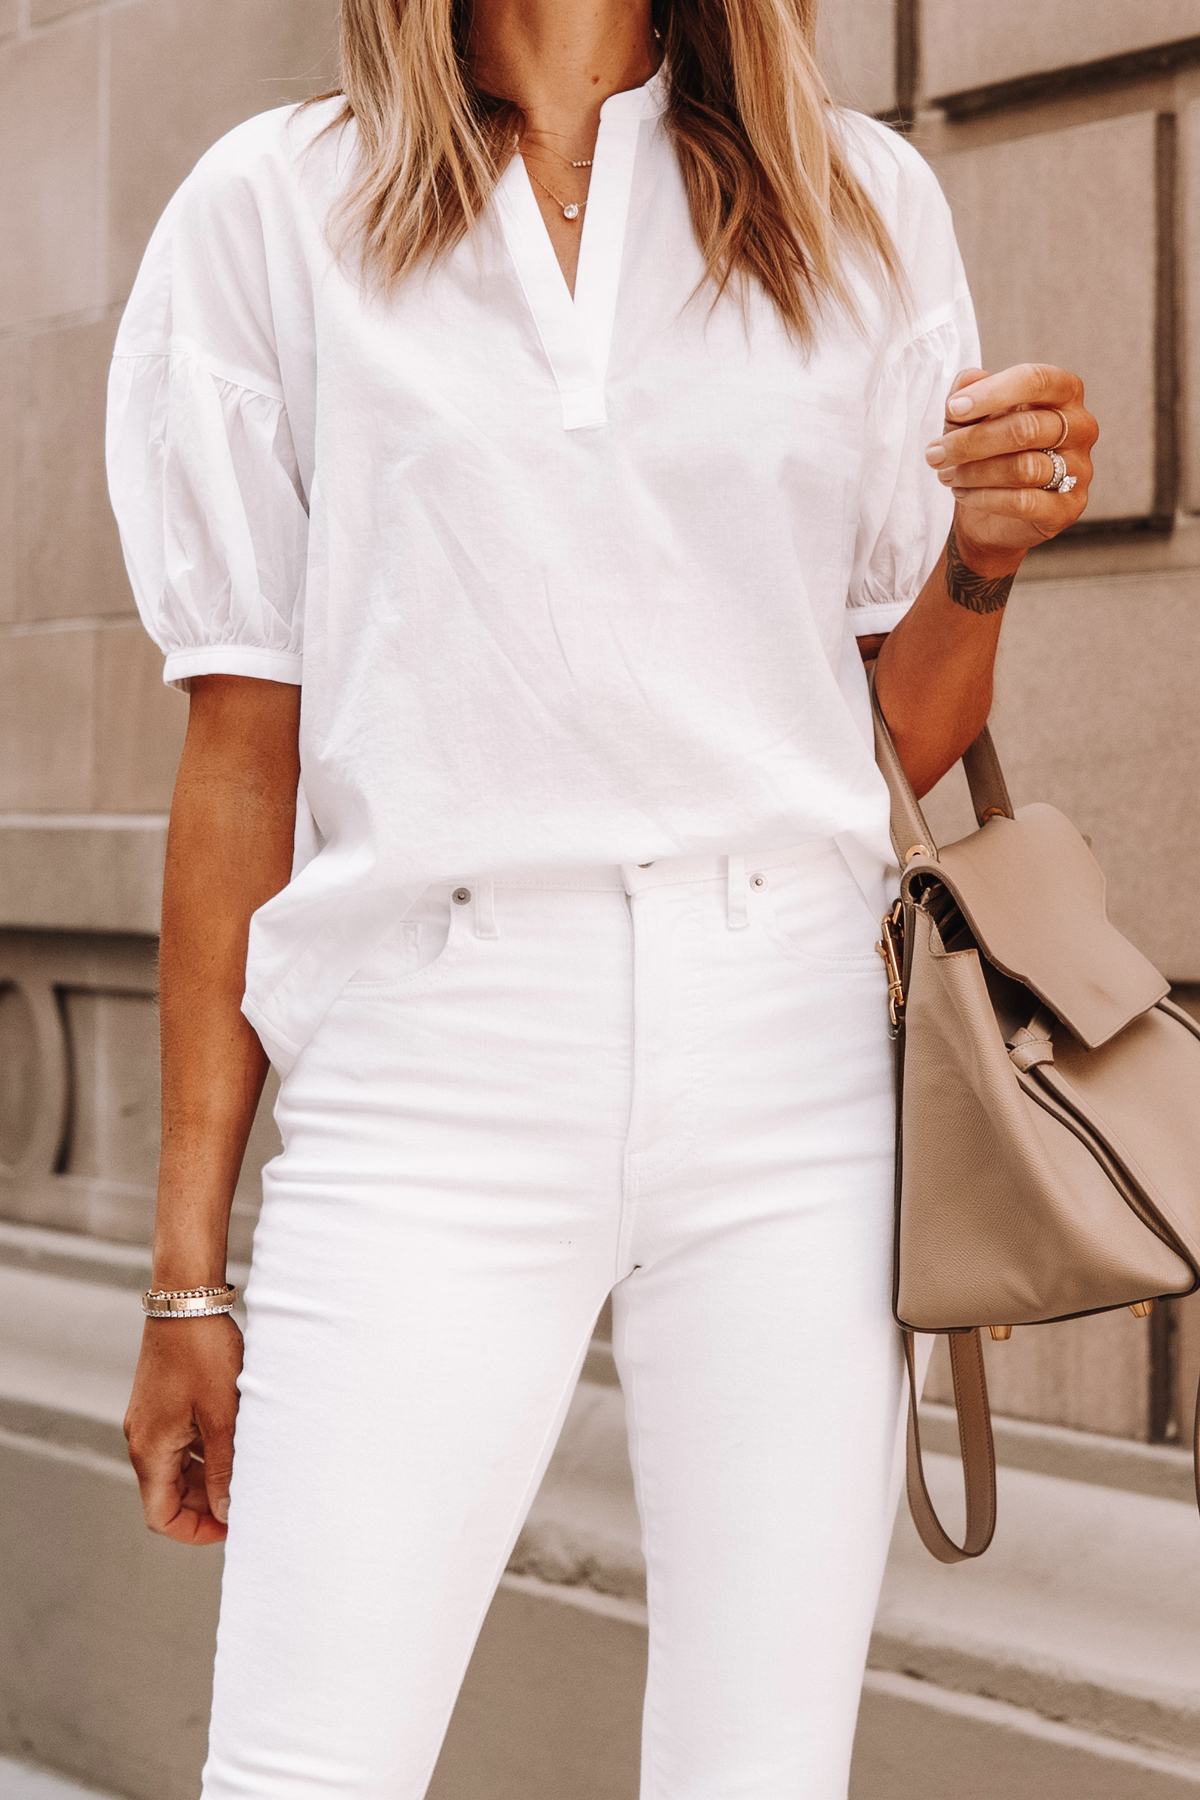 Fashion Jackson Wearing Everlane White Puff Sleeve Top White Skinny Jeans Celine Belt Bag 1